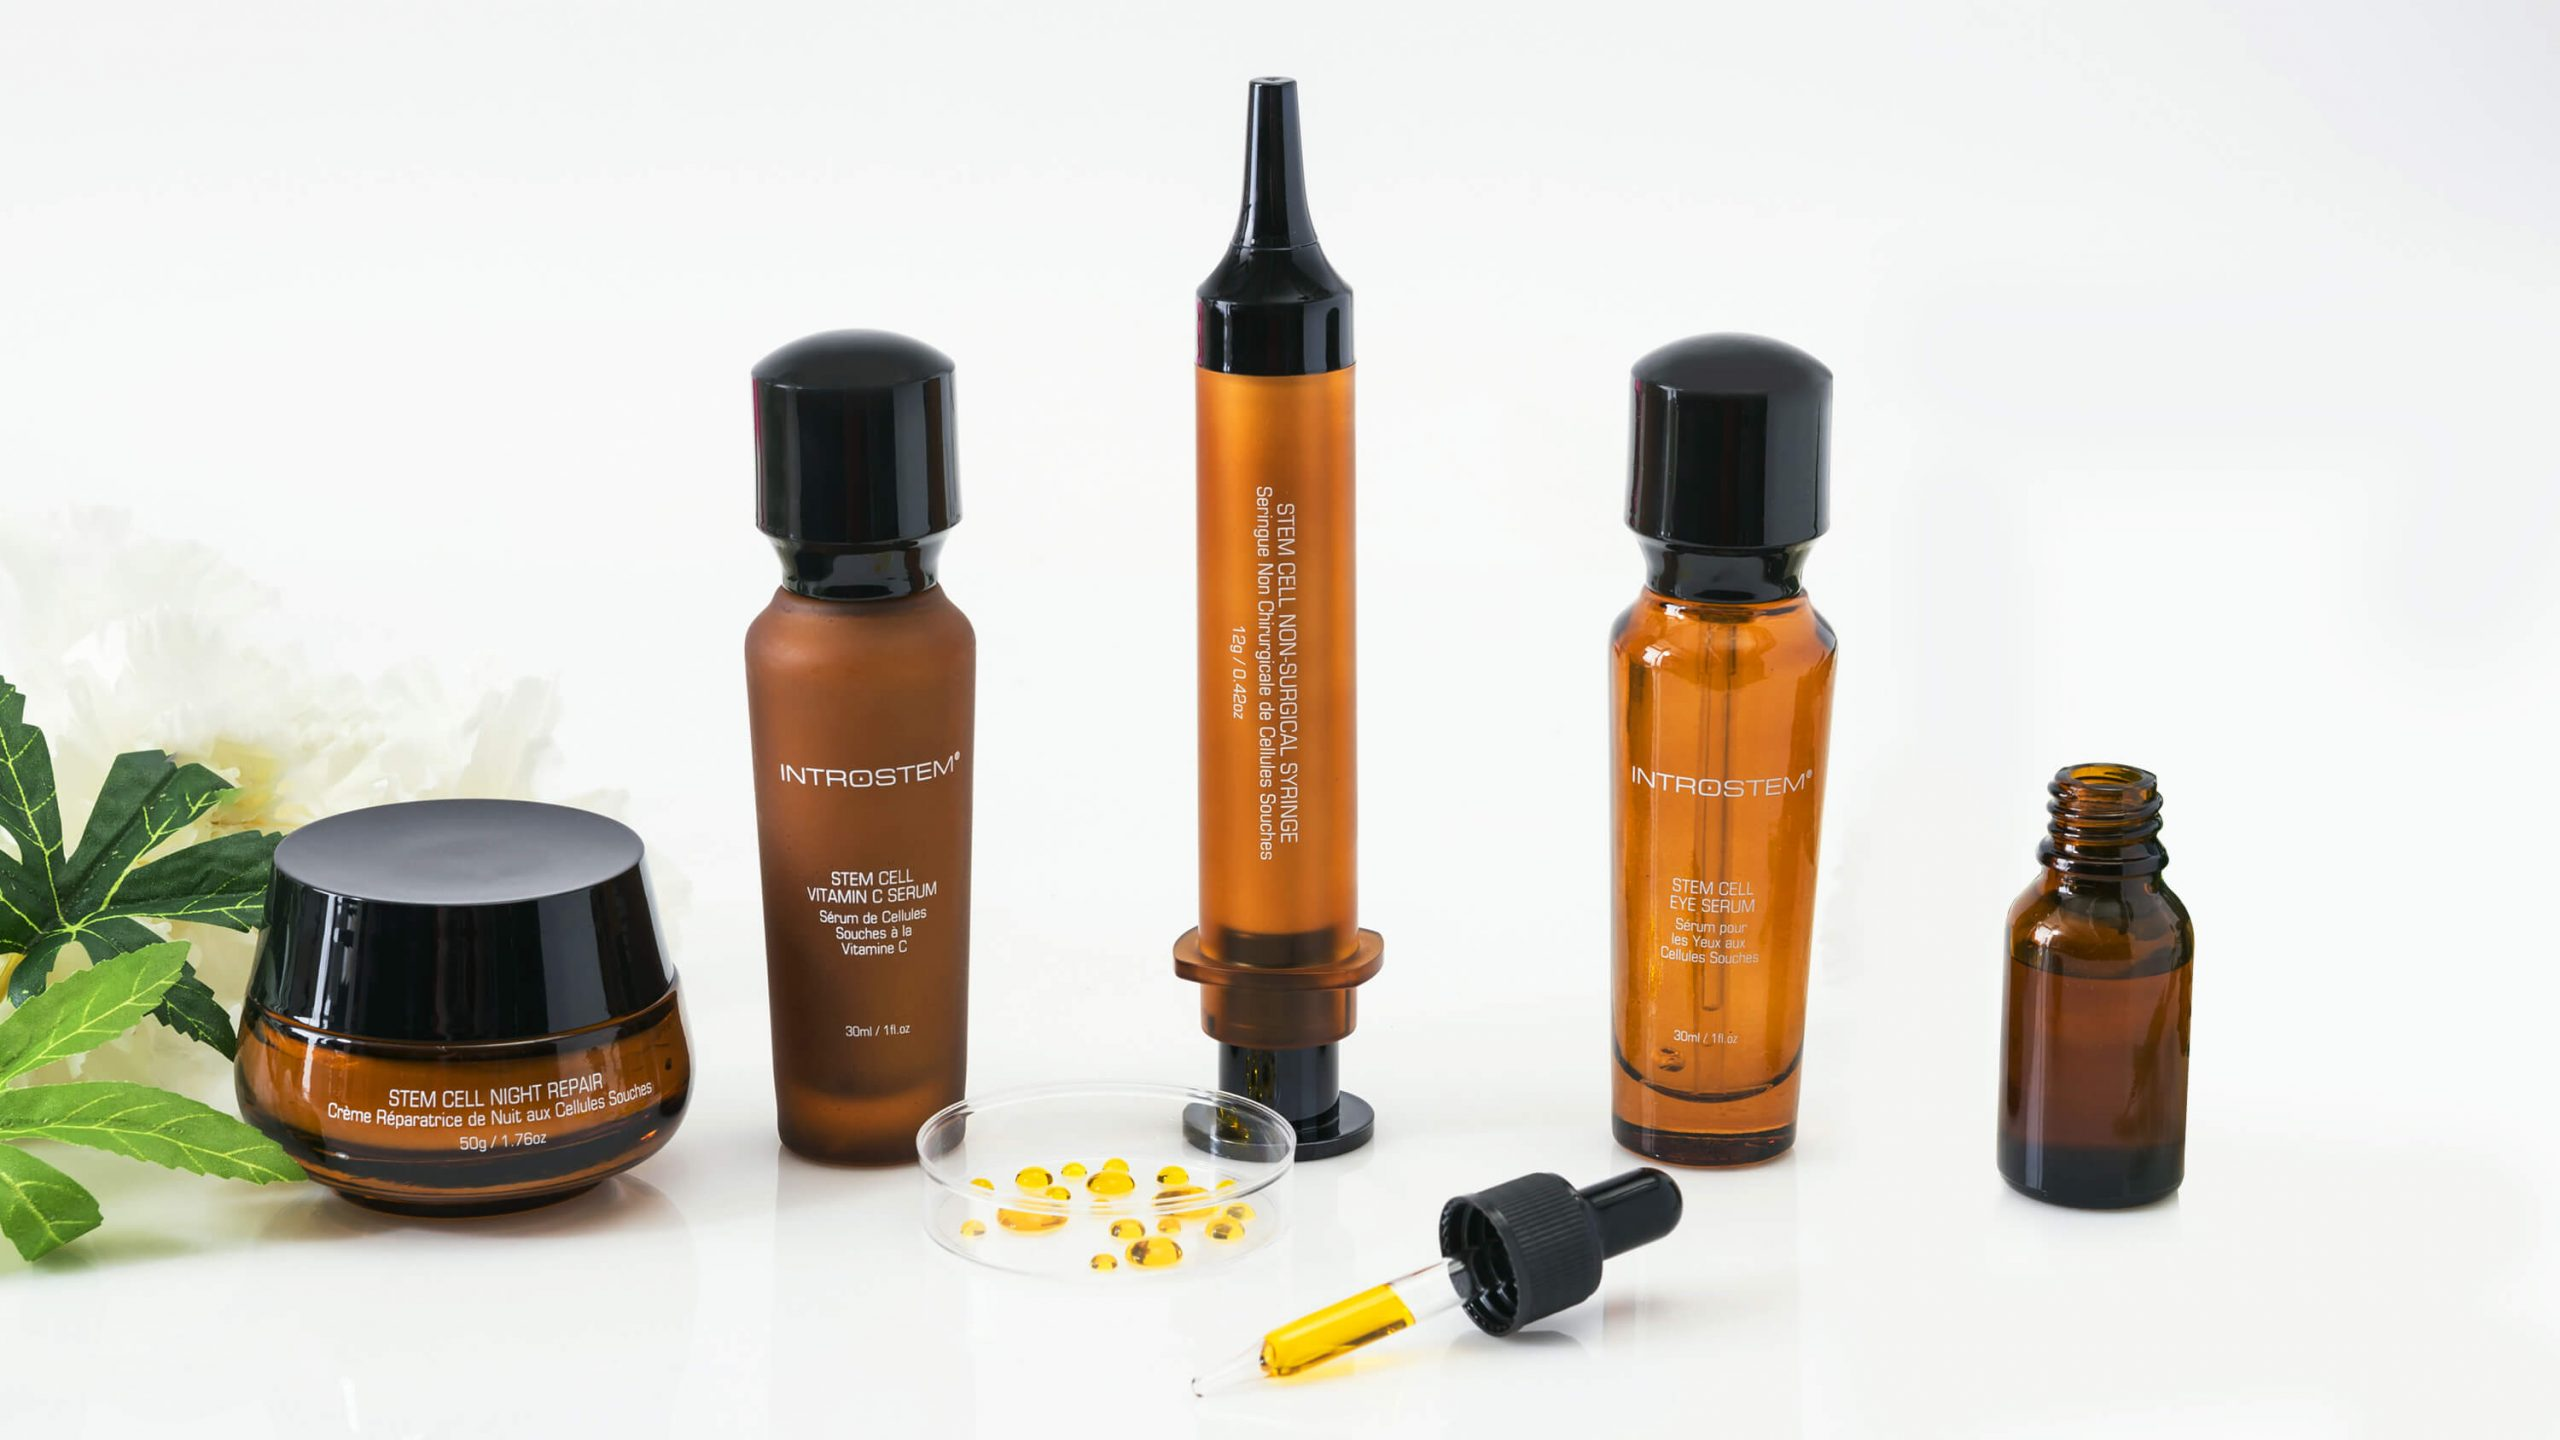 Stem cell skin care products from Introstem Skincare